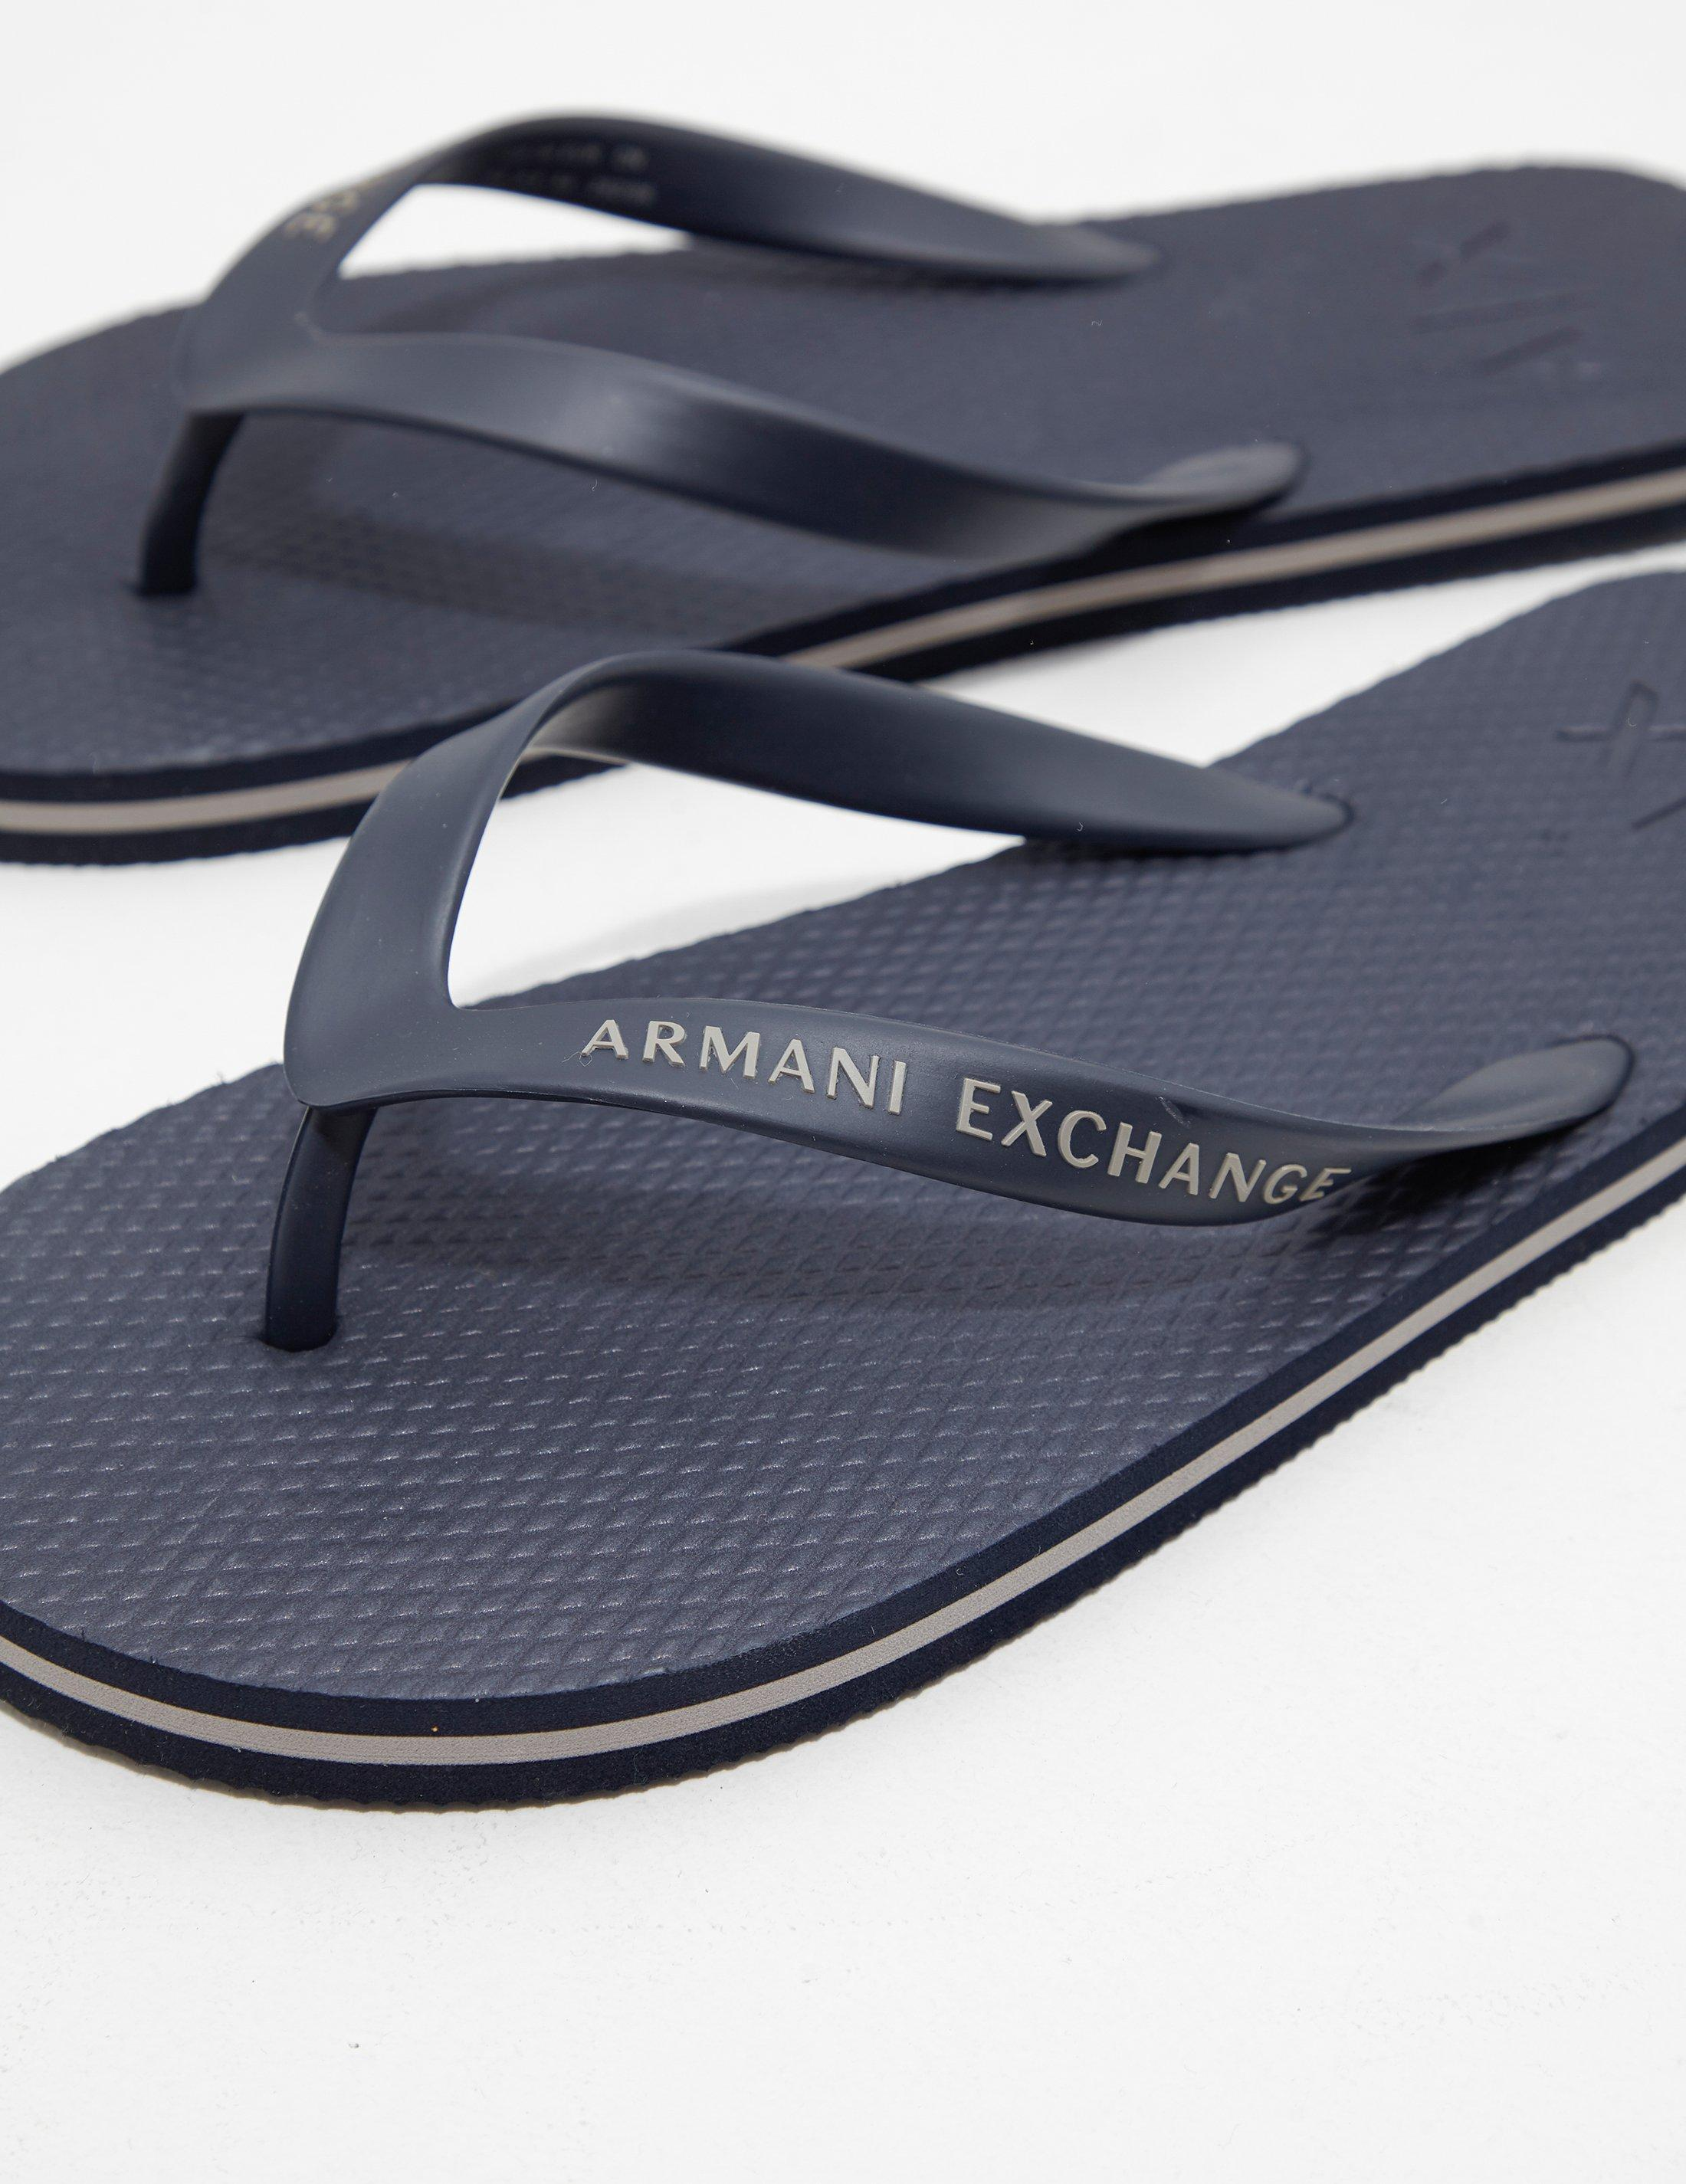 0275848dcbde Lyst - Armani Exchange Mens Flip Flops Navy Blue in Blue for Men